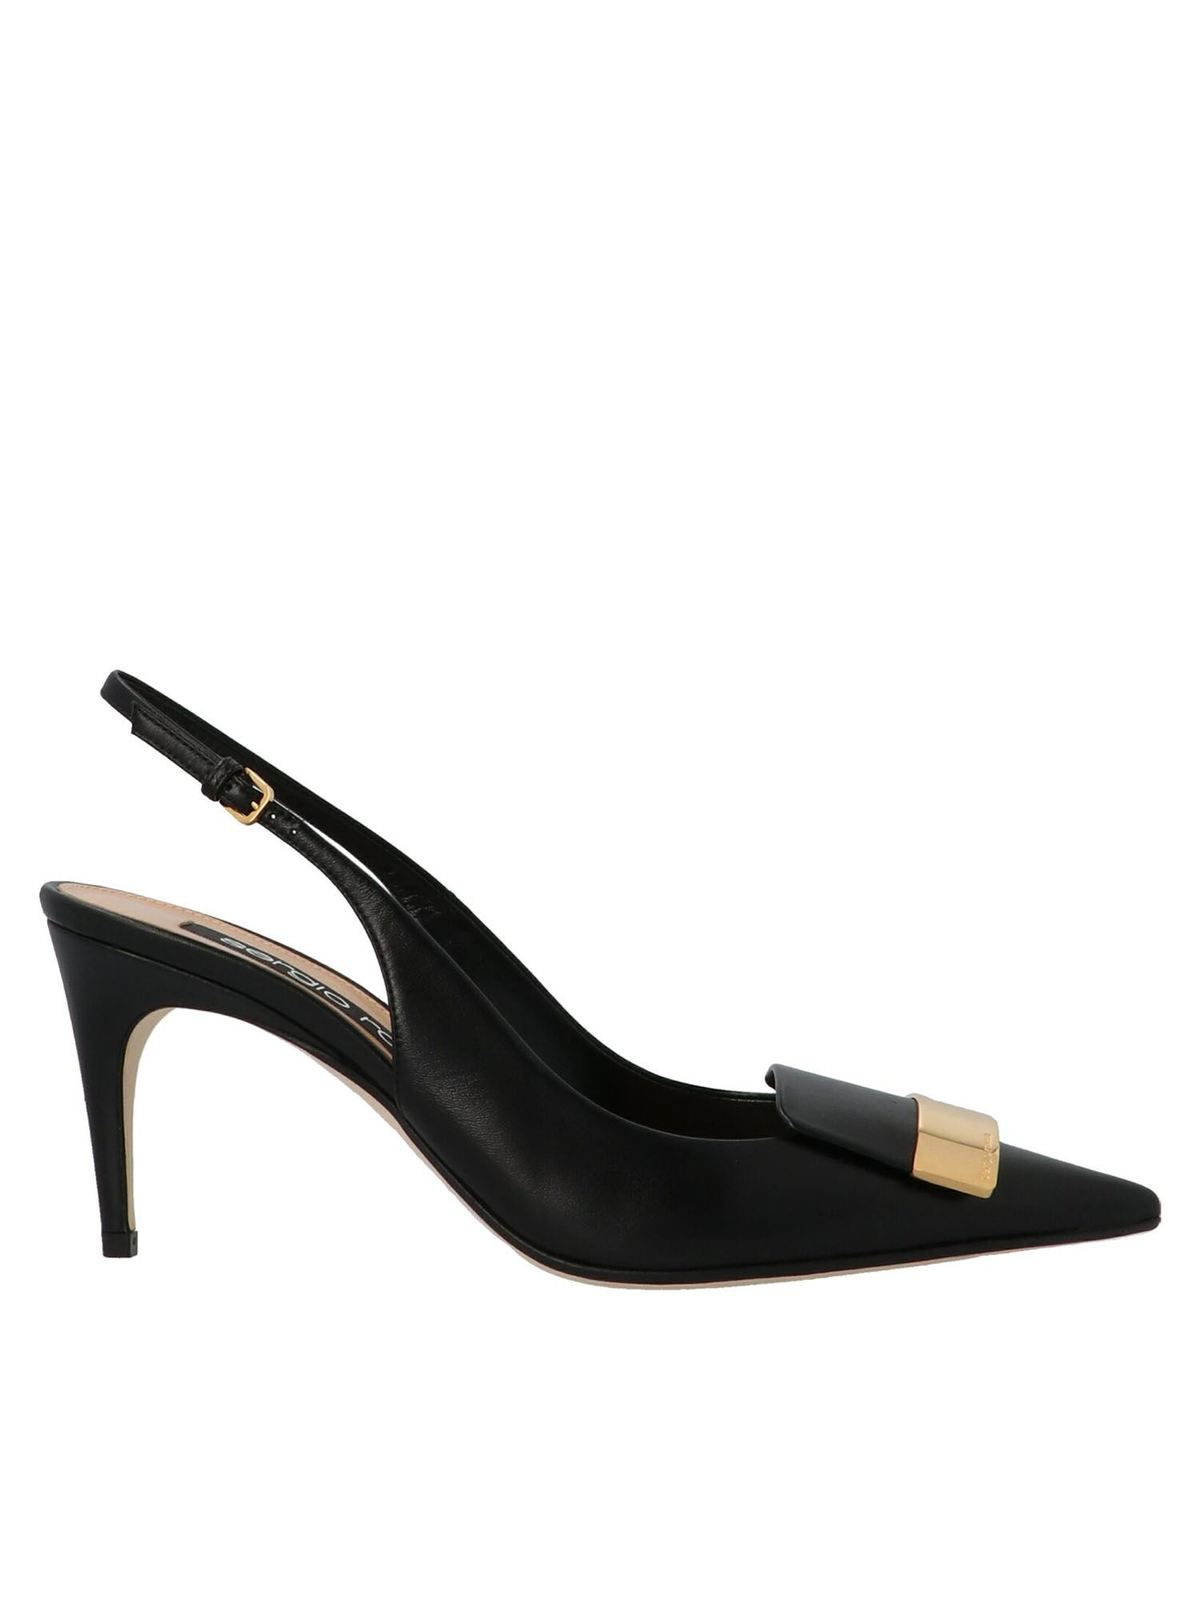 Sergio Rossi POINTED SLINGBACKS IN BLACK